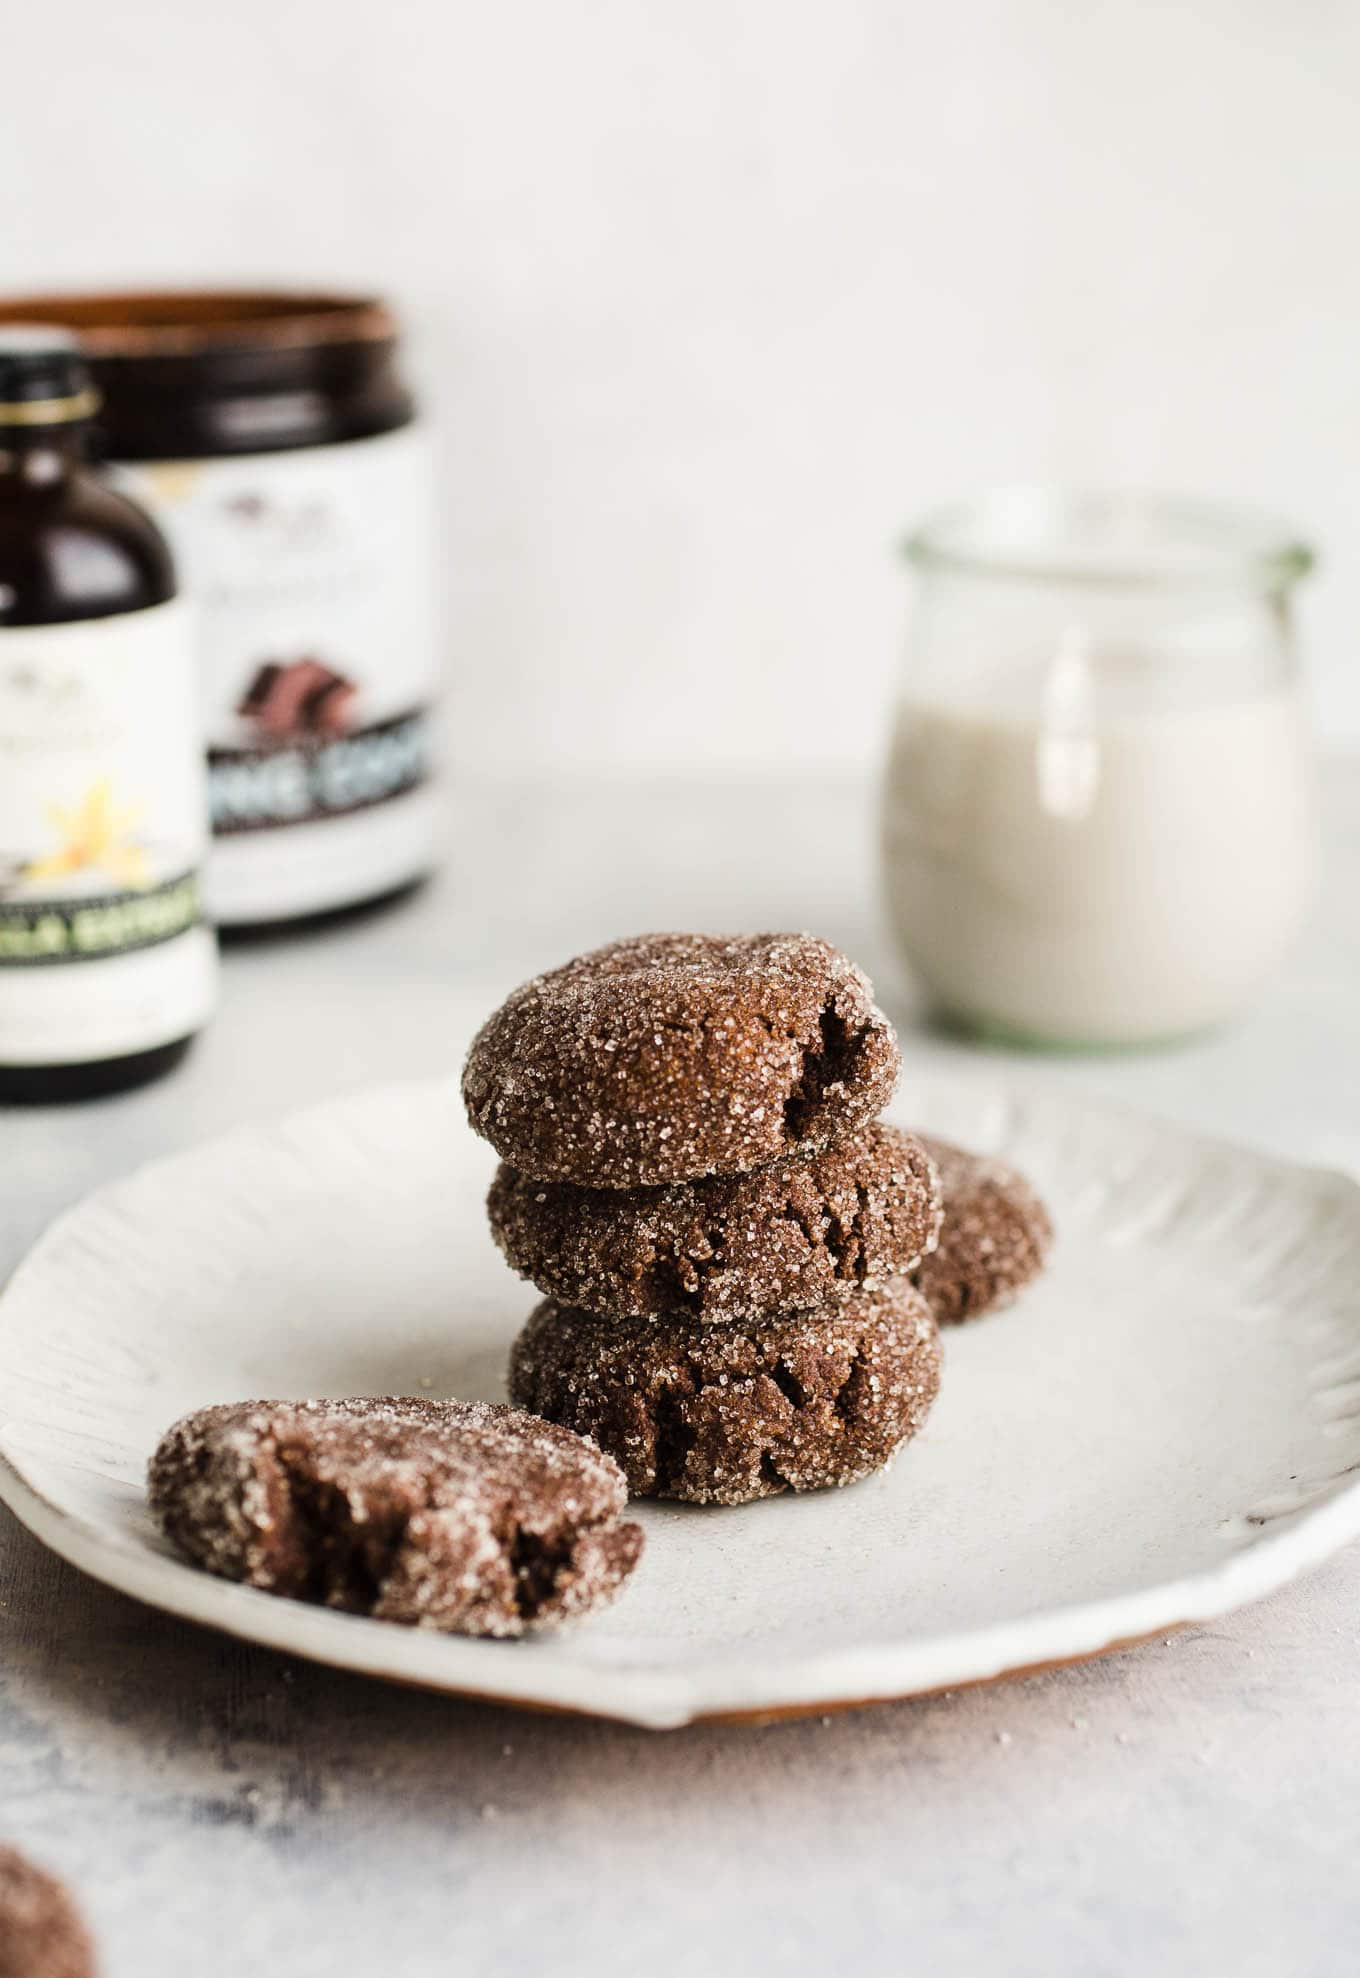 A combination of cocoa, almond flour, vanilla, and molasses make these Chewy Chocolate Molasses Cookies soft and delicious. An easy gluten-free, vegan cookie!